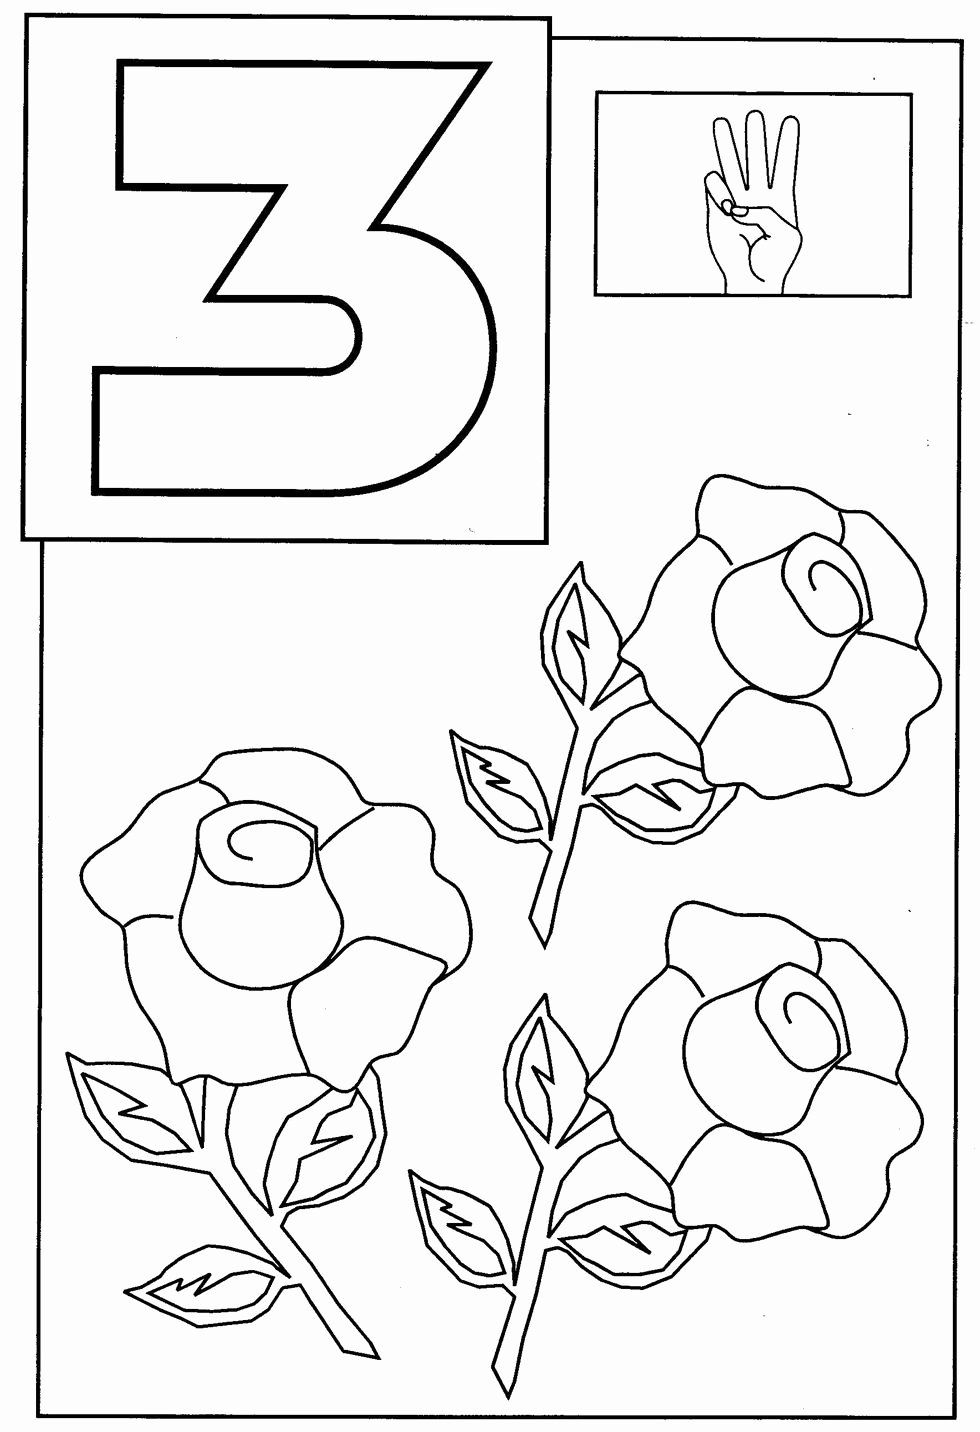 Number 3 Coloring Sheet Lovely Number 3 Coloring Page Coloring Home In 2020 Star Coloring Pages Toddler Coloring Book Coloring Pages